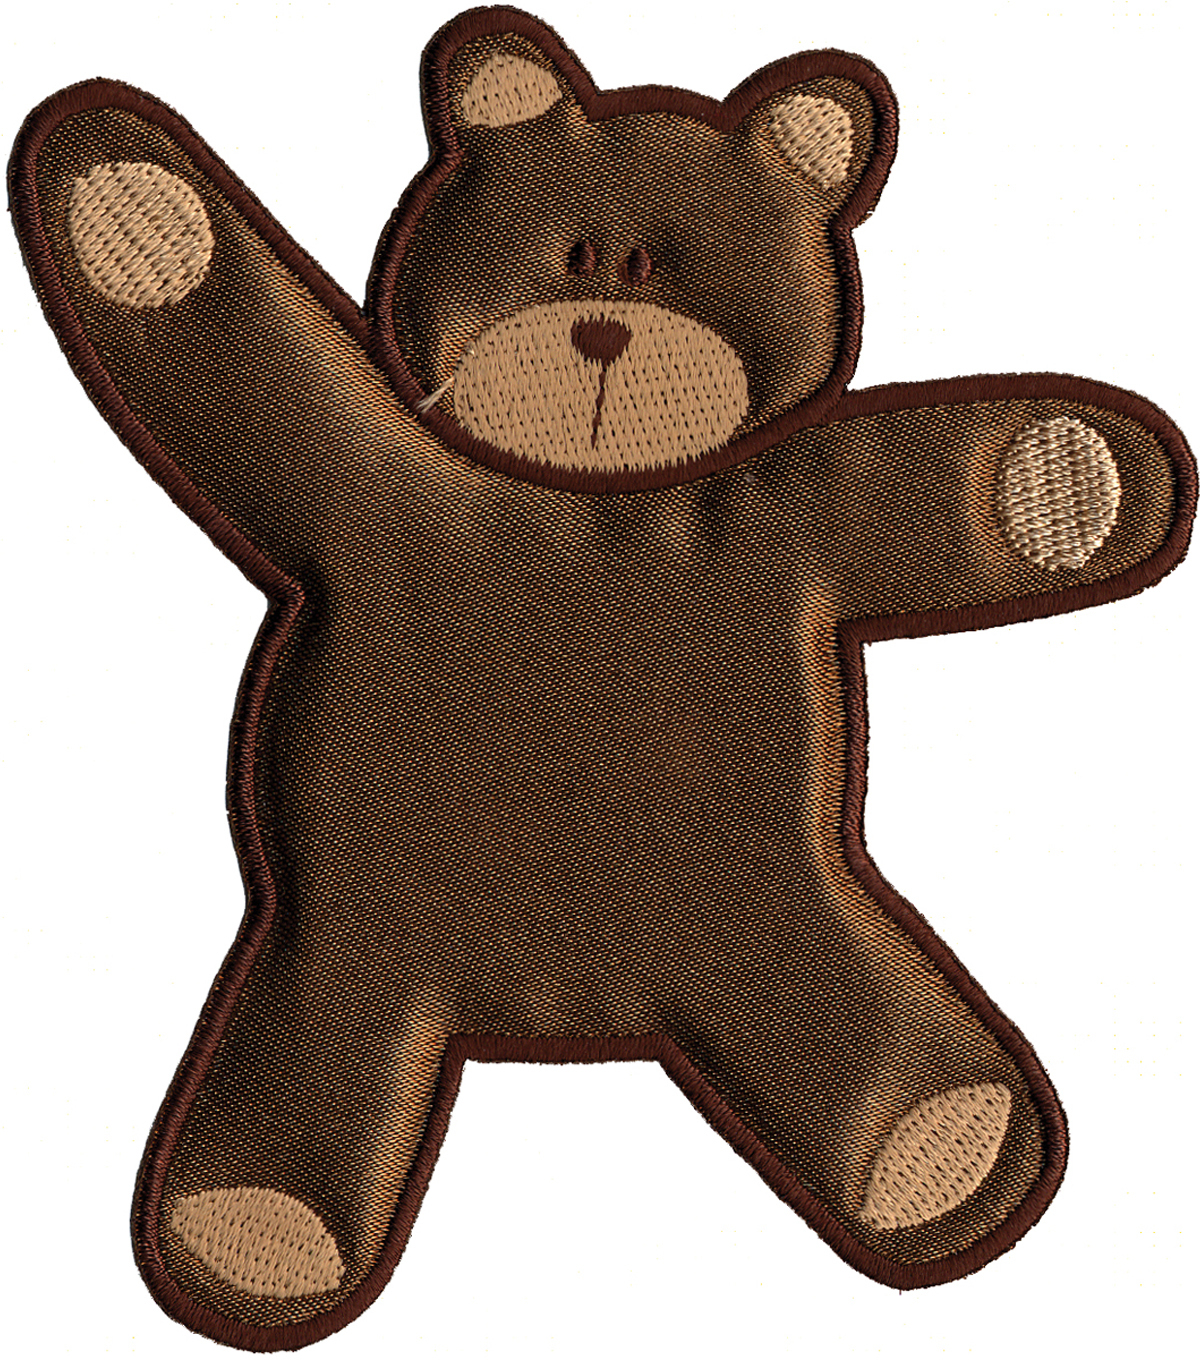 Wrights Especially Baby Iron-On Appliques-Brown Bear 4\u0022X3-5/8\u0022 1/Pkg